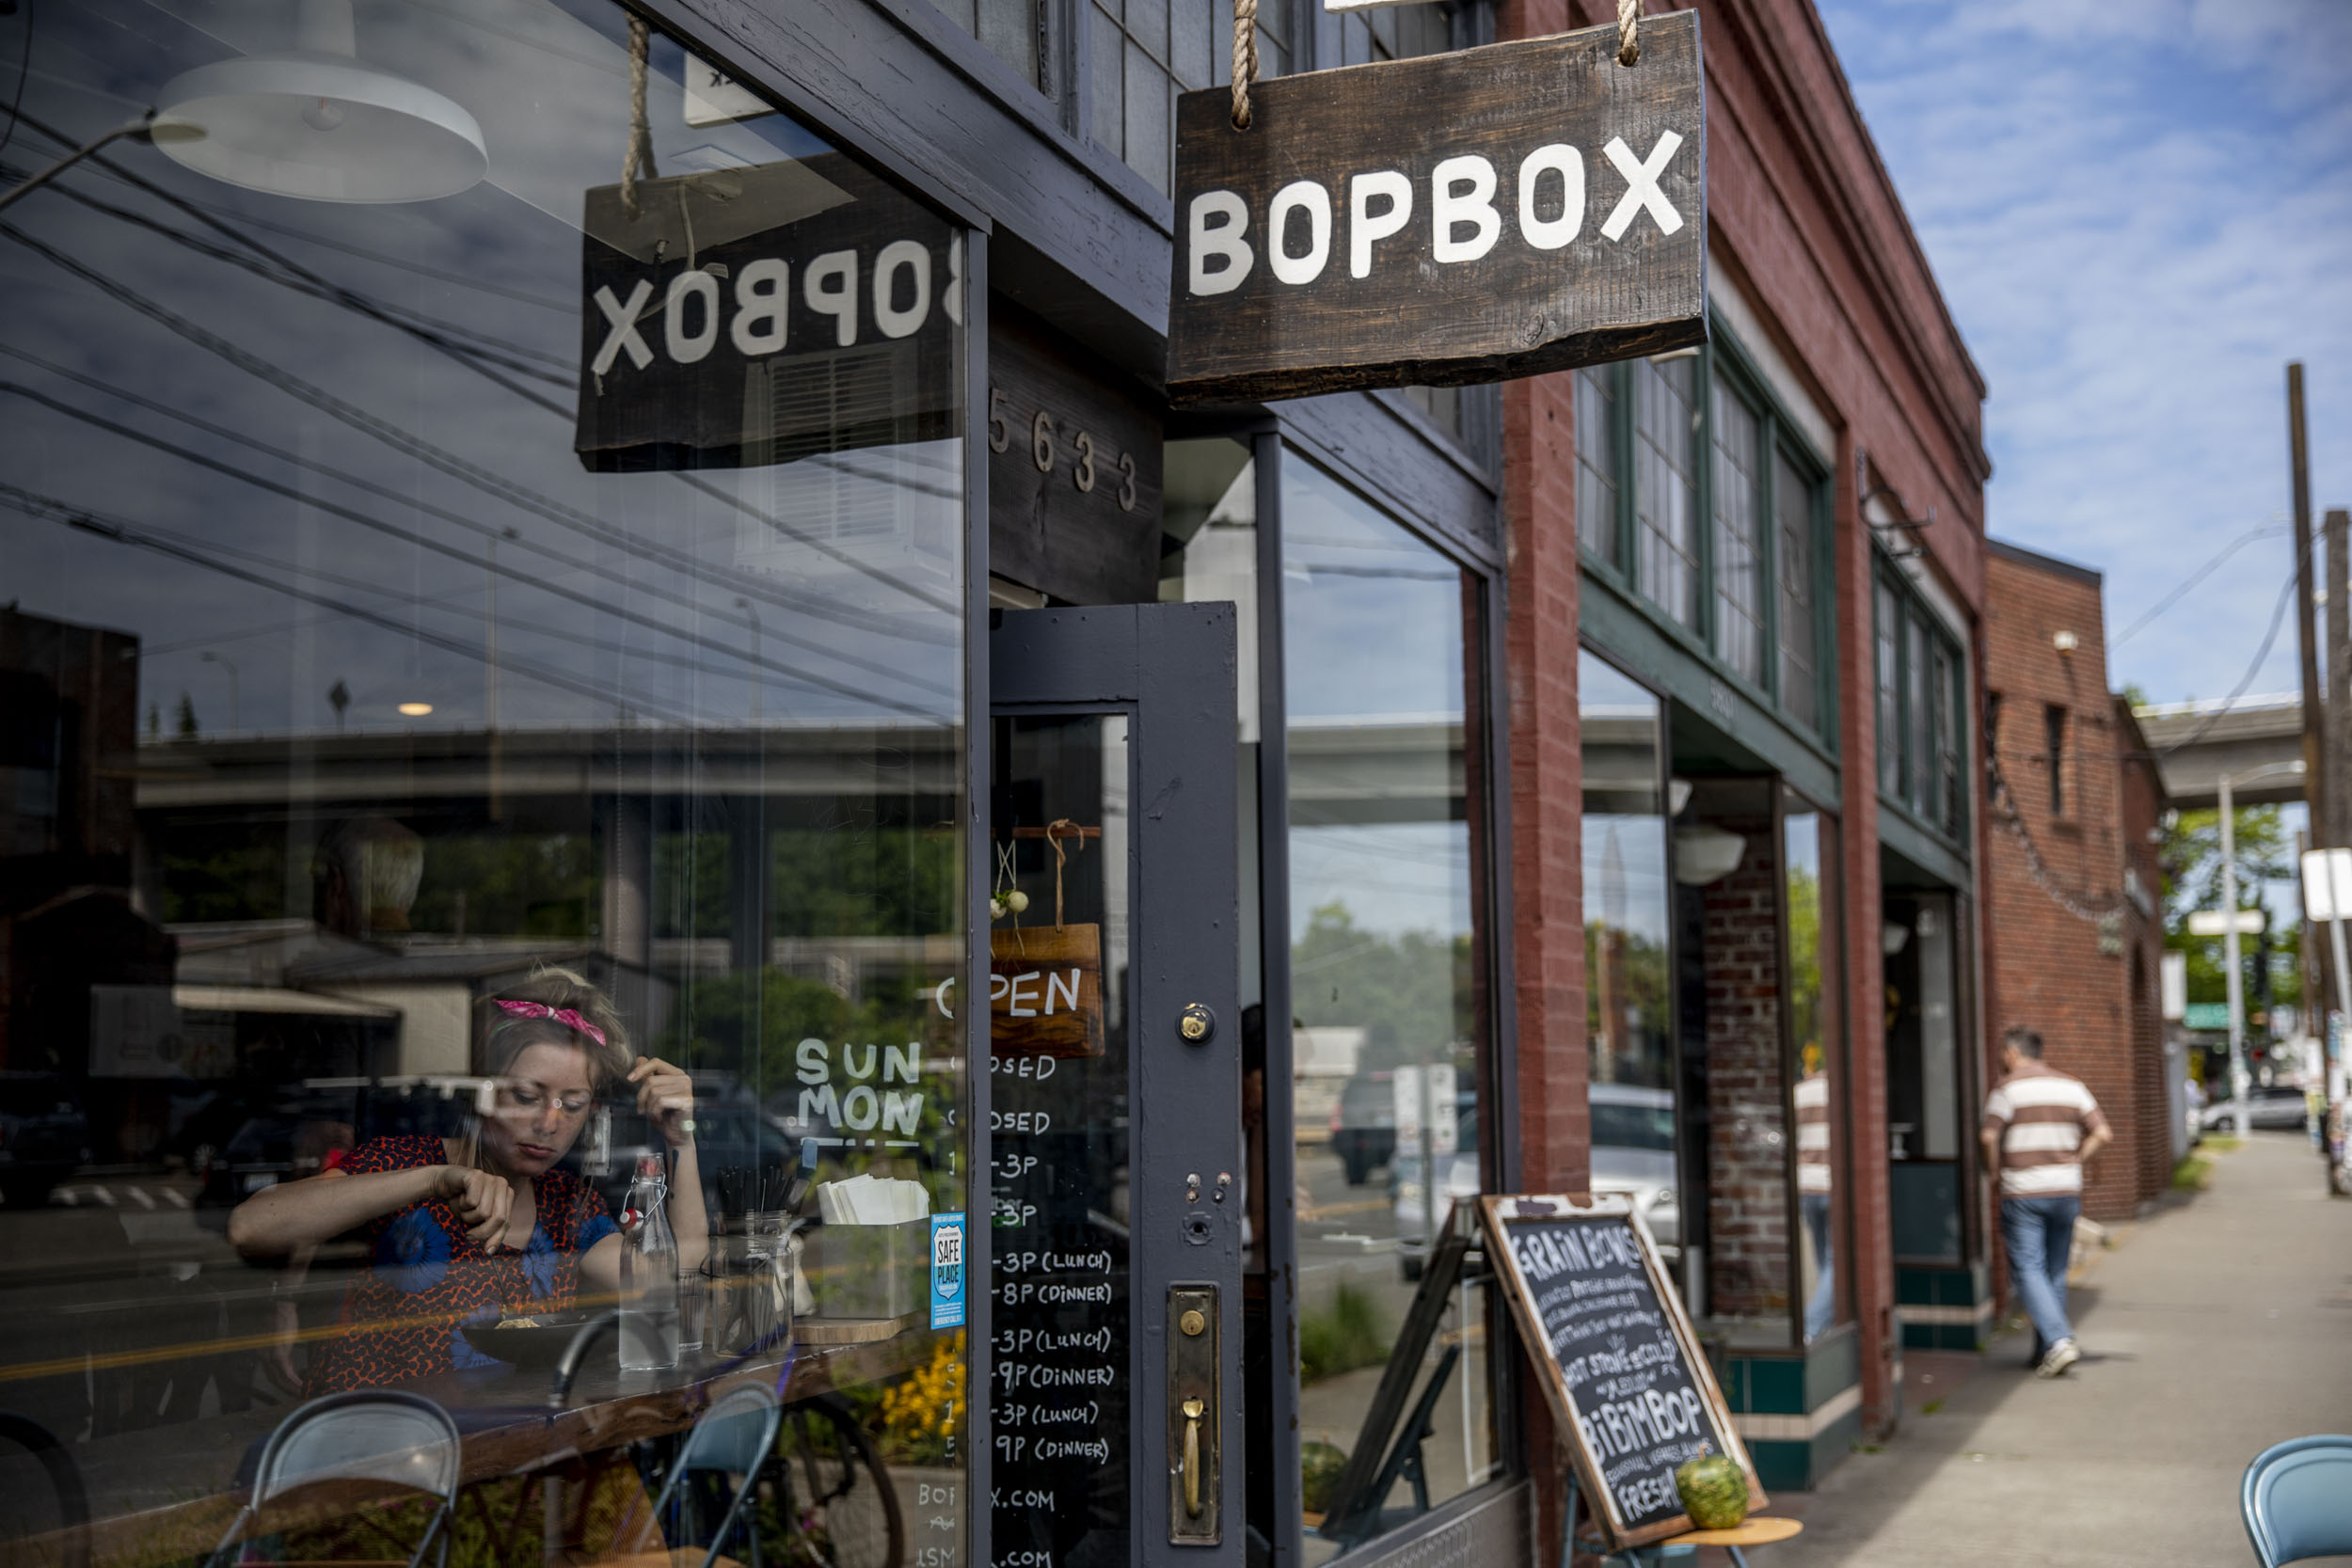 Bopbox in the Georgetown neighborhood of Seattle on May 8, 2019. (Photo by Dorothy Edwards/Crosscut)